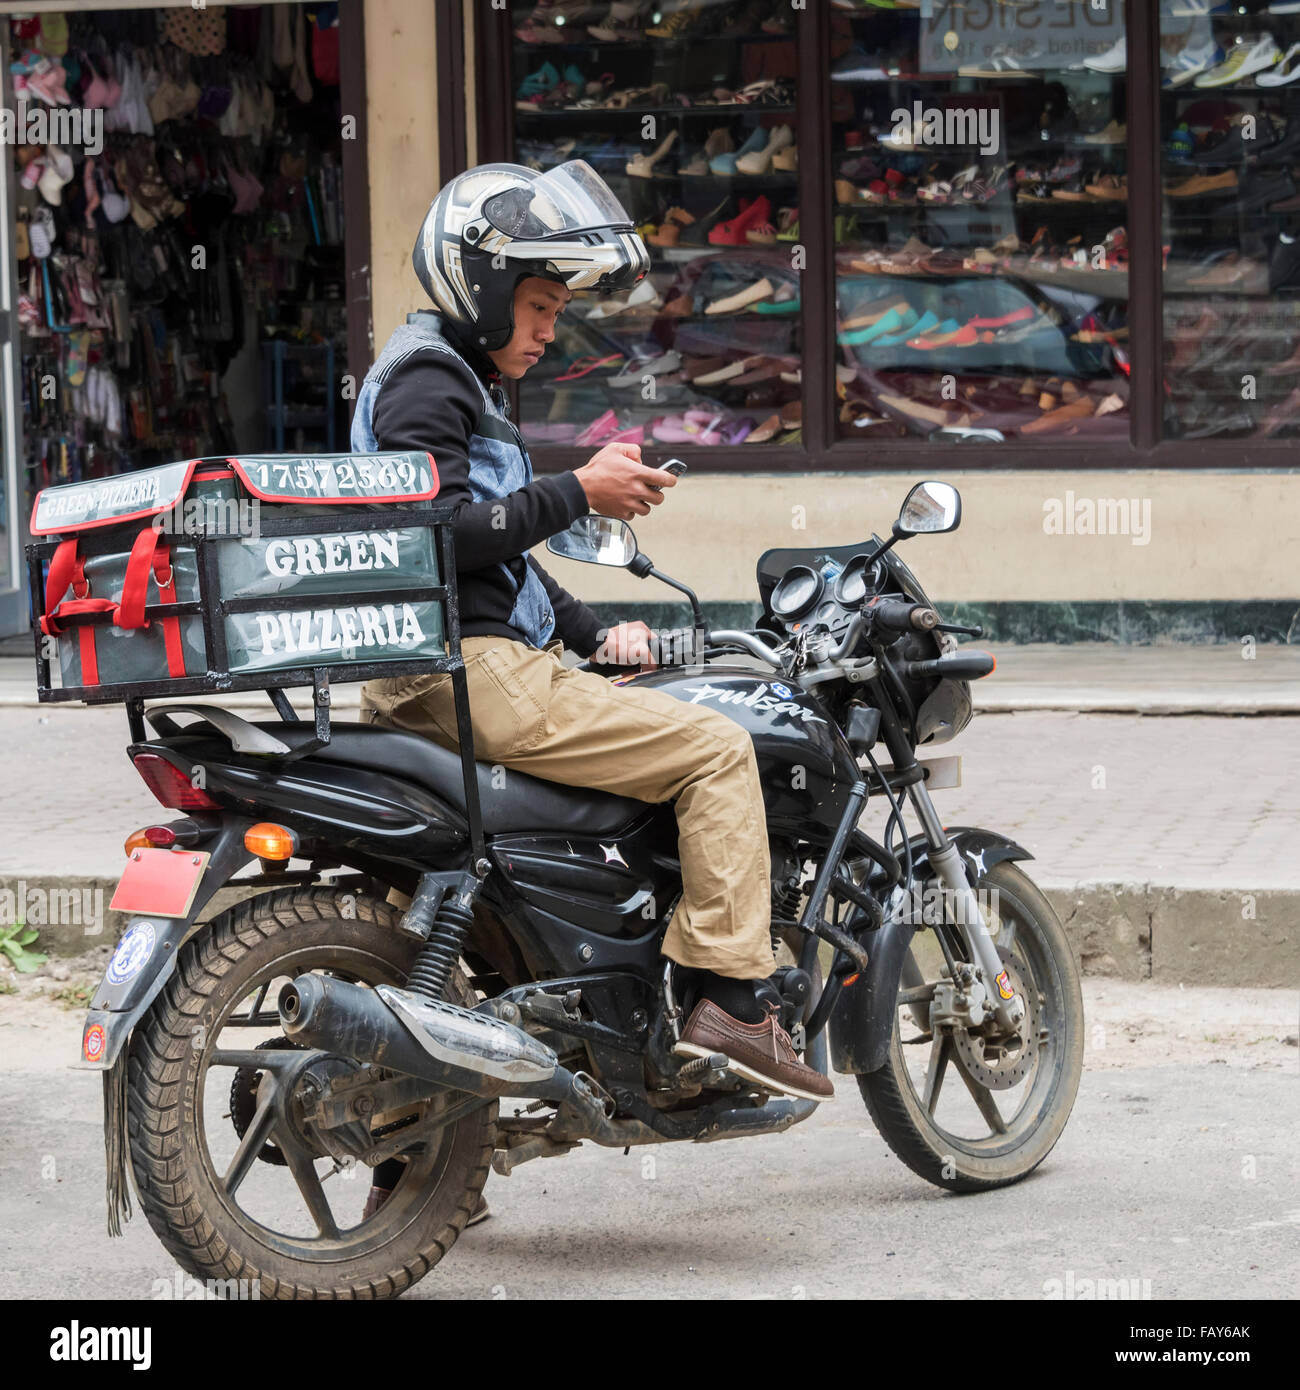 Pizza delivery man on a motorcycle in the street using a smart phone; Thimphu, Bhutan - Stock Image